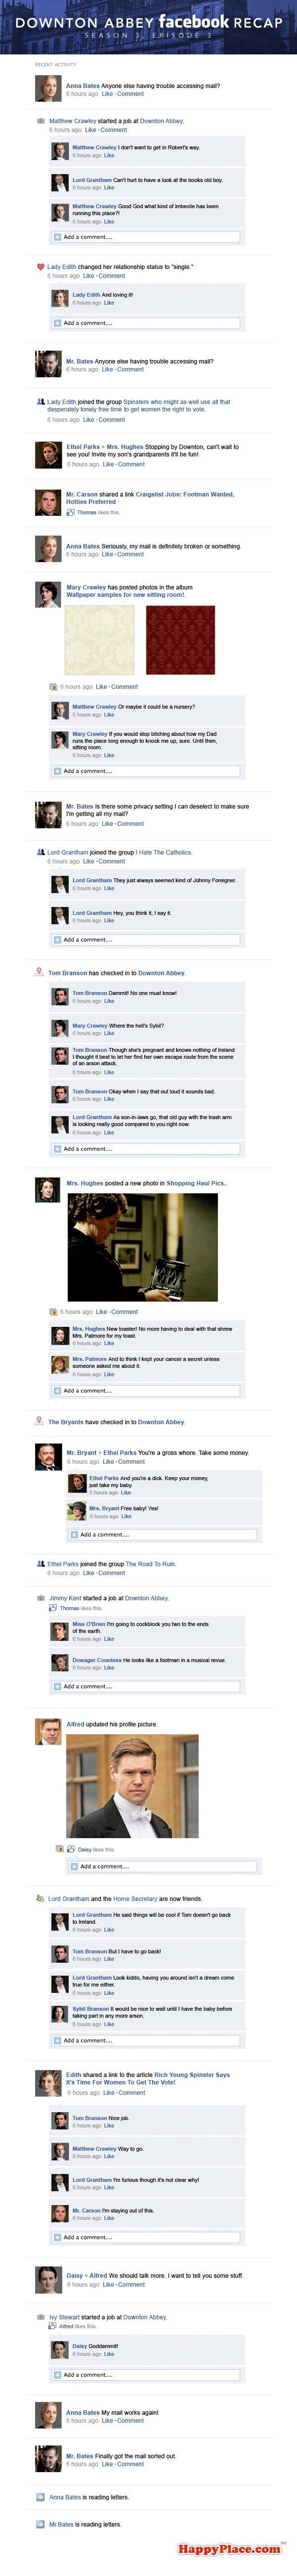 Downton Abbey Facebook Recap Season 3 Episode 3 | If downton abby was played out on FB. too funny! {don't read unless you have already watched episode 3}